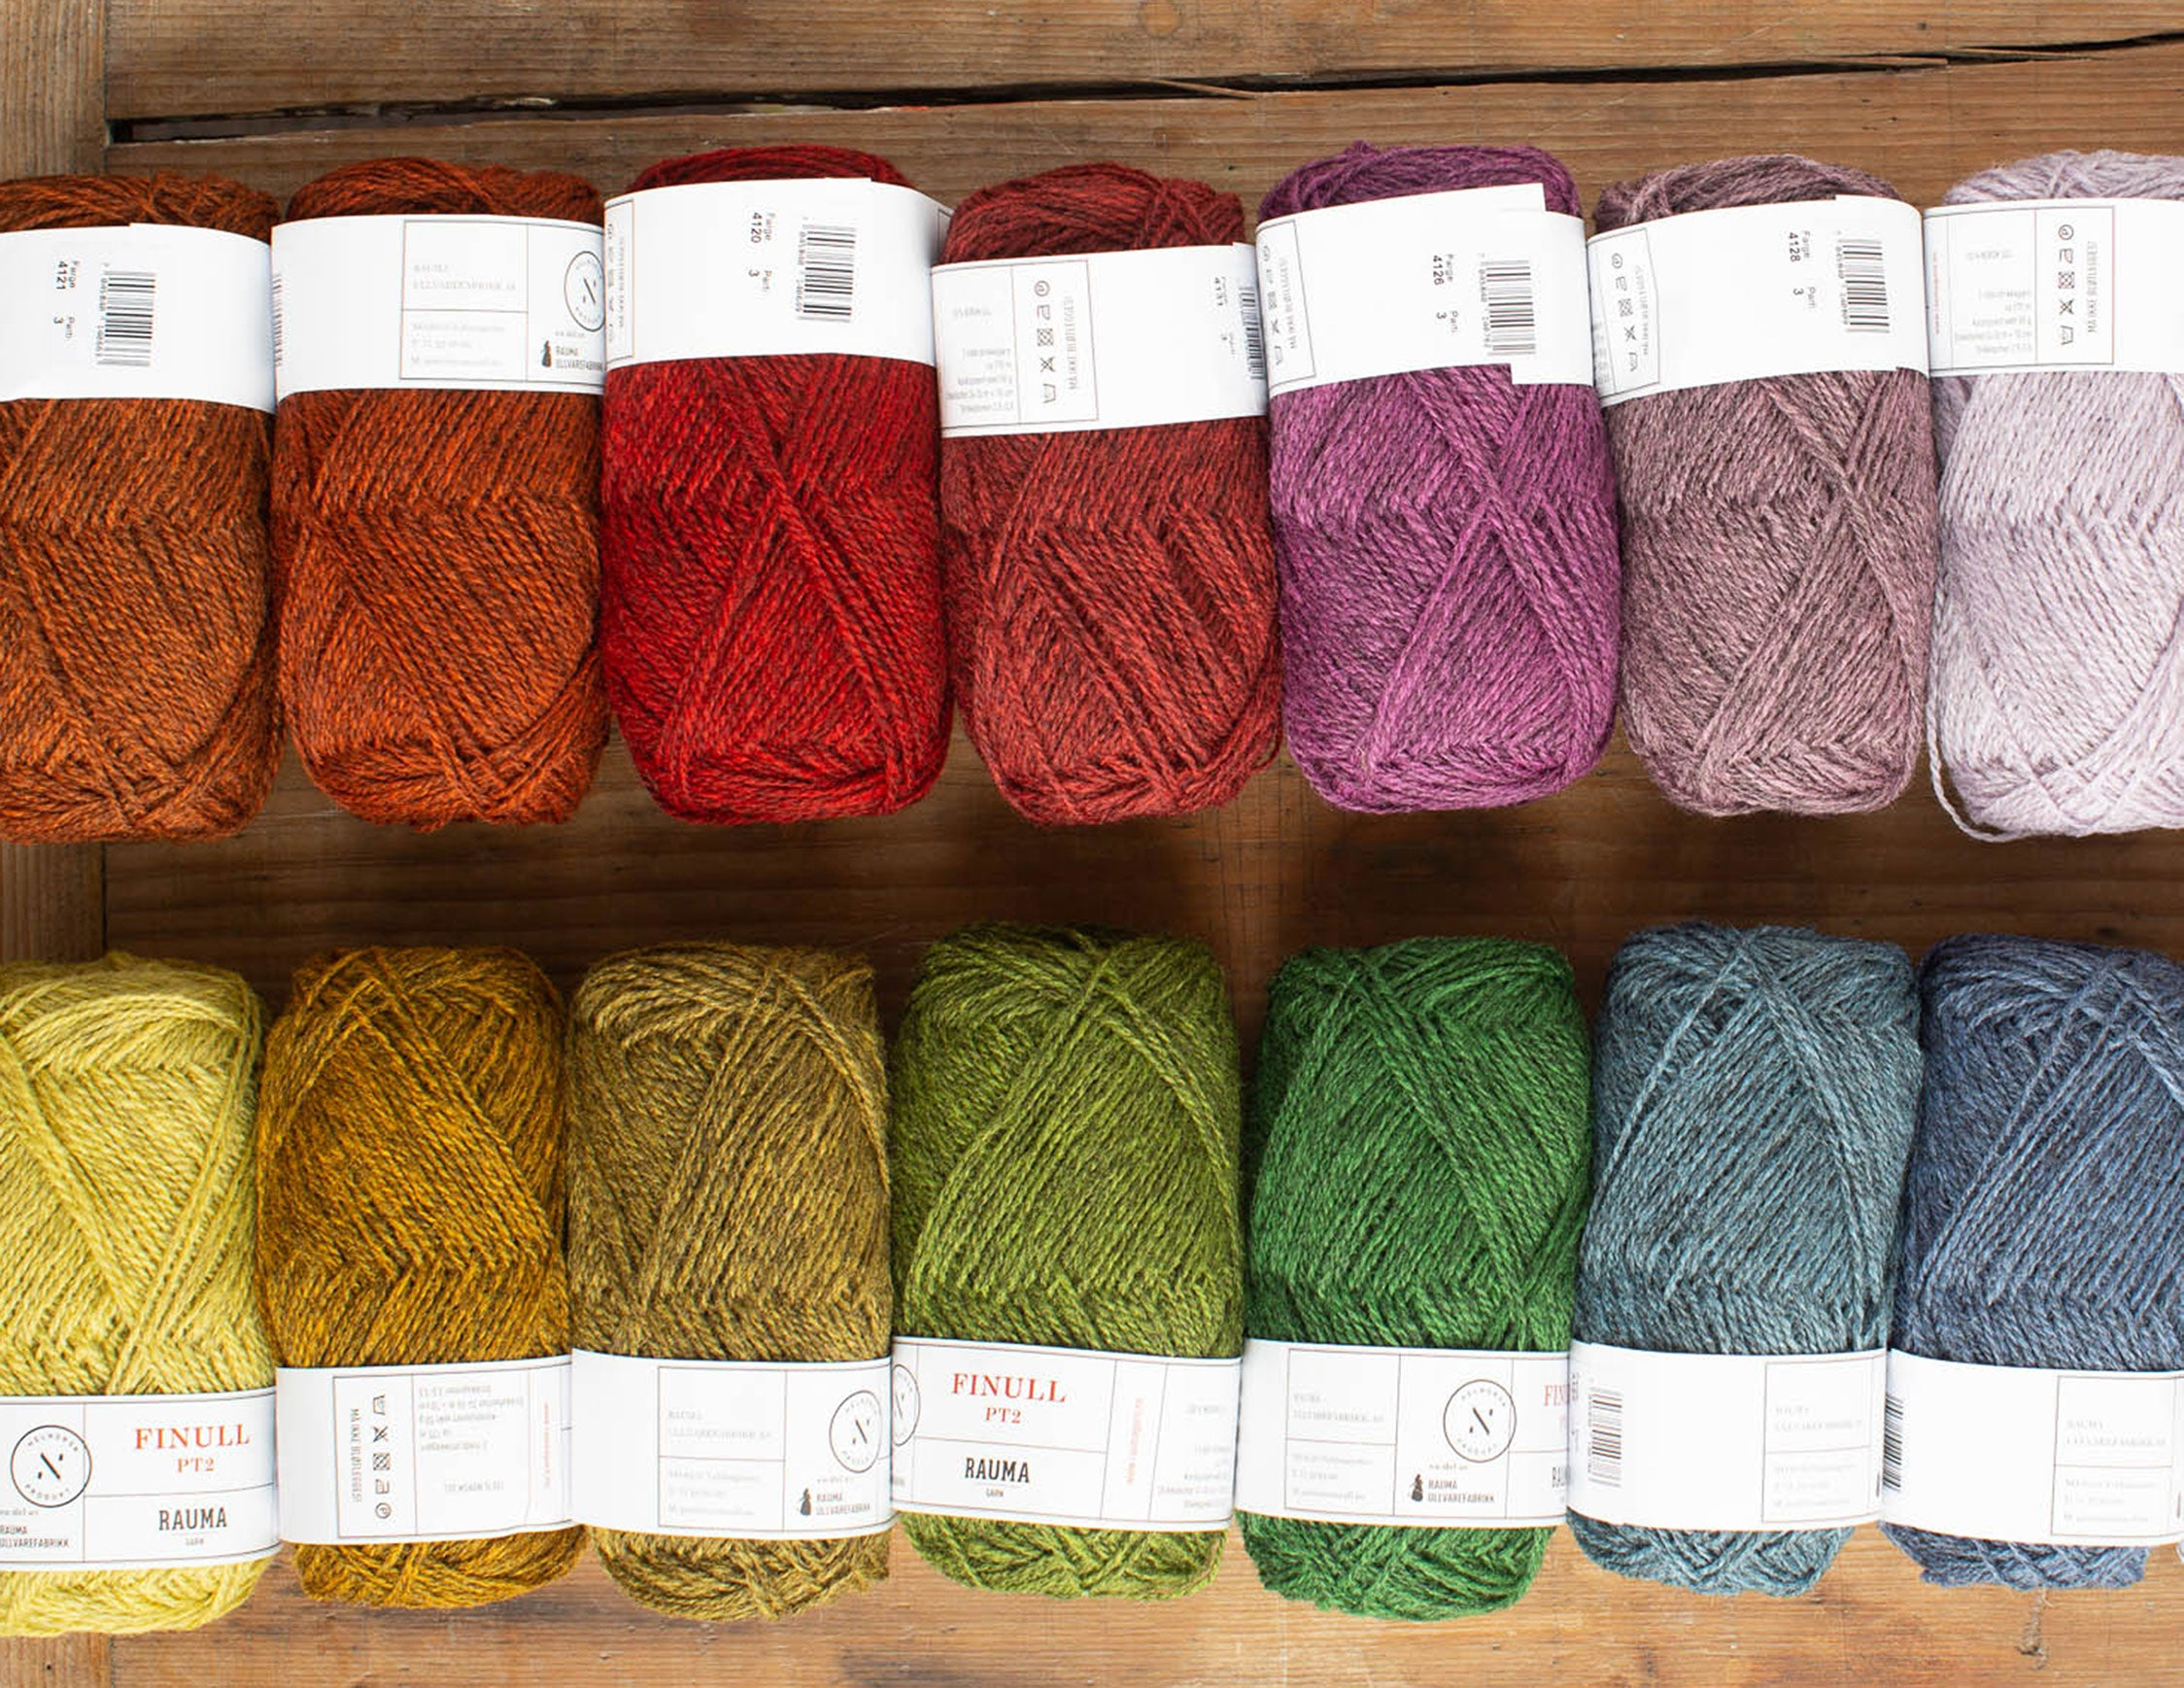 a line up of shades of heathered yarn